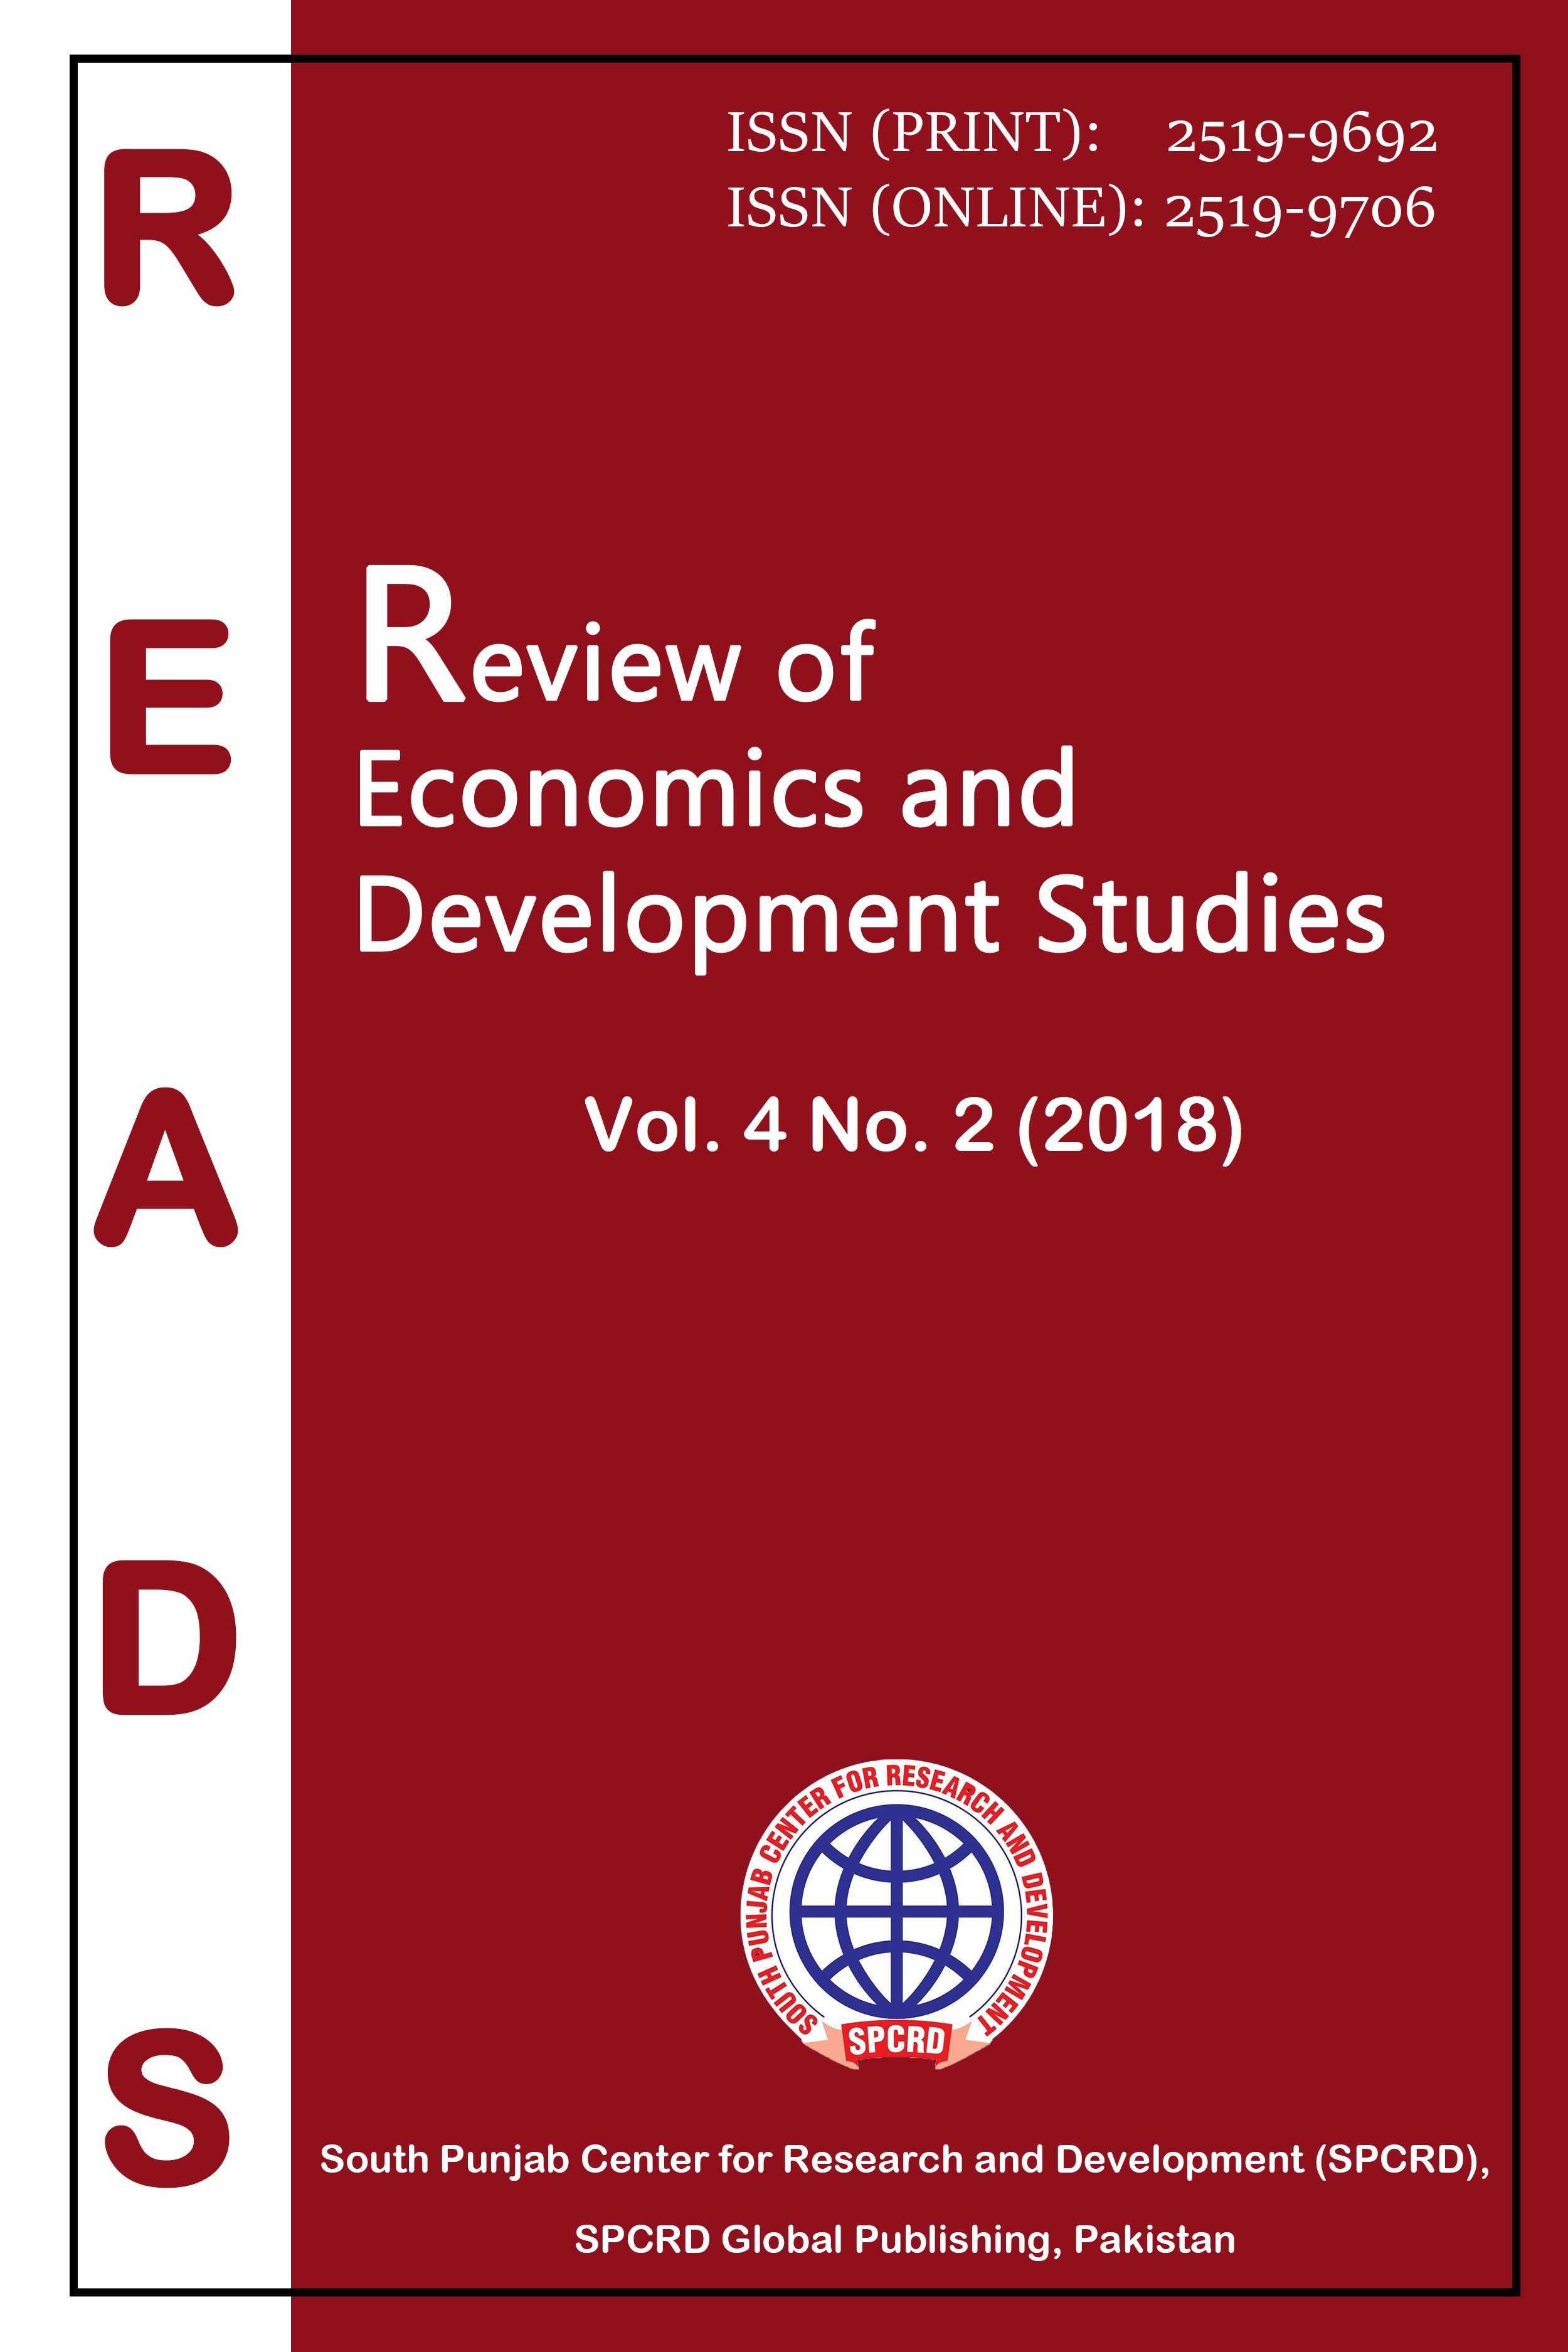 View Vol. 4 No. 2 (2018): Review of Economics and Development Studies (READS)